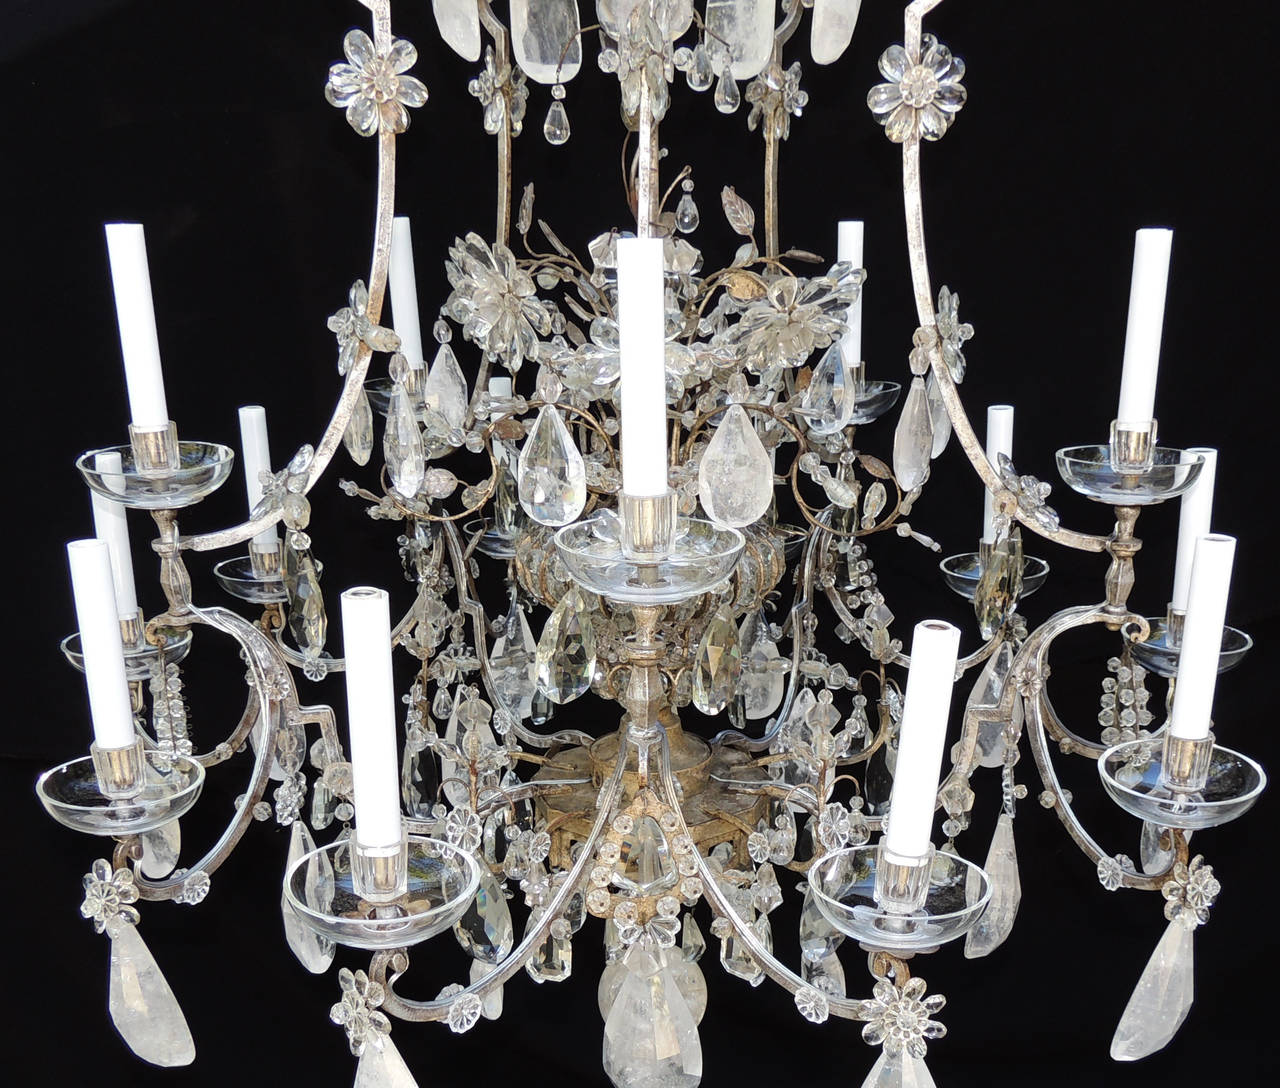 Early 20th Century Incredible Maison Baguès Silver Rock Crystal Floral Centre Chandelier Fixture For Sale